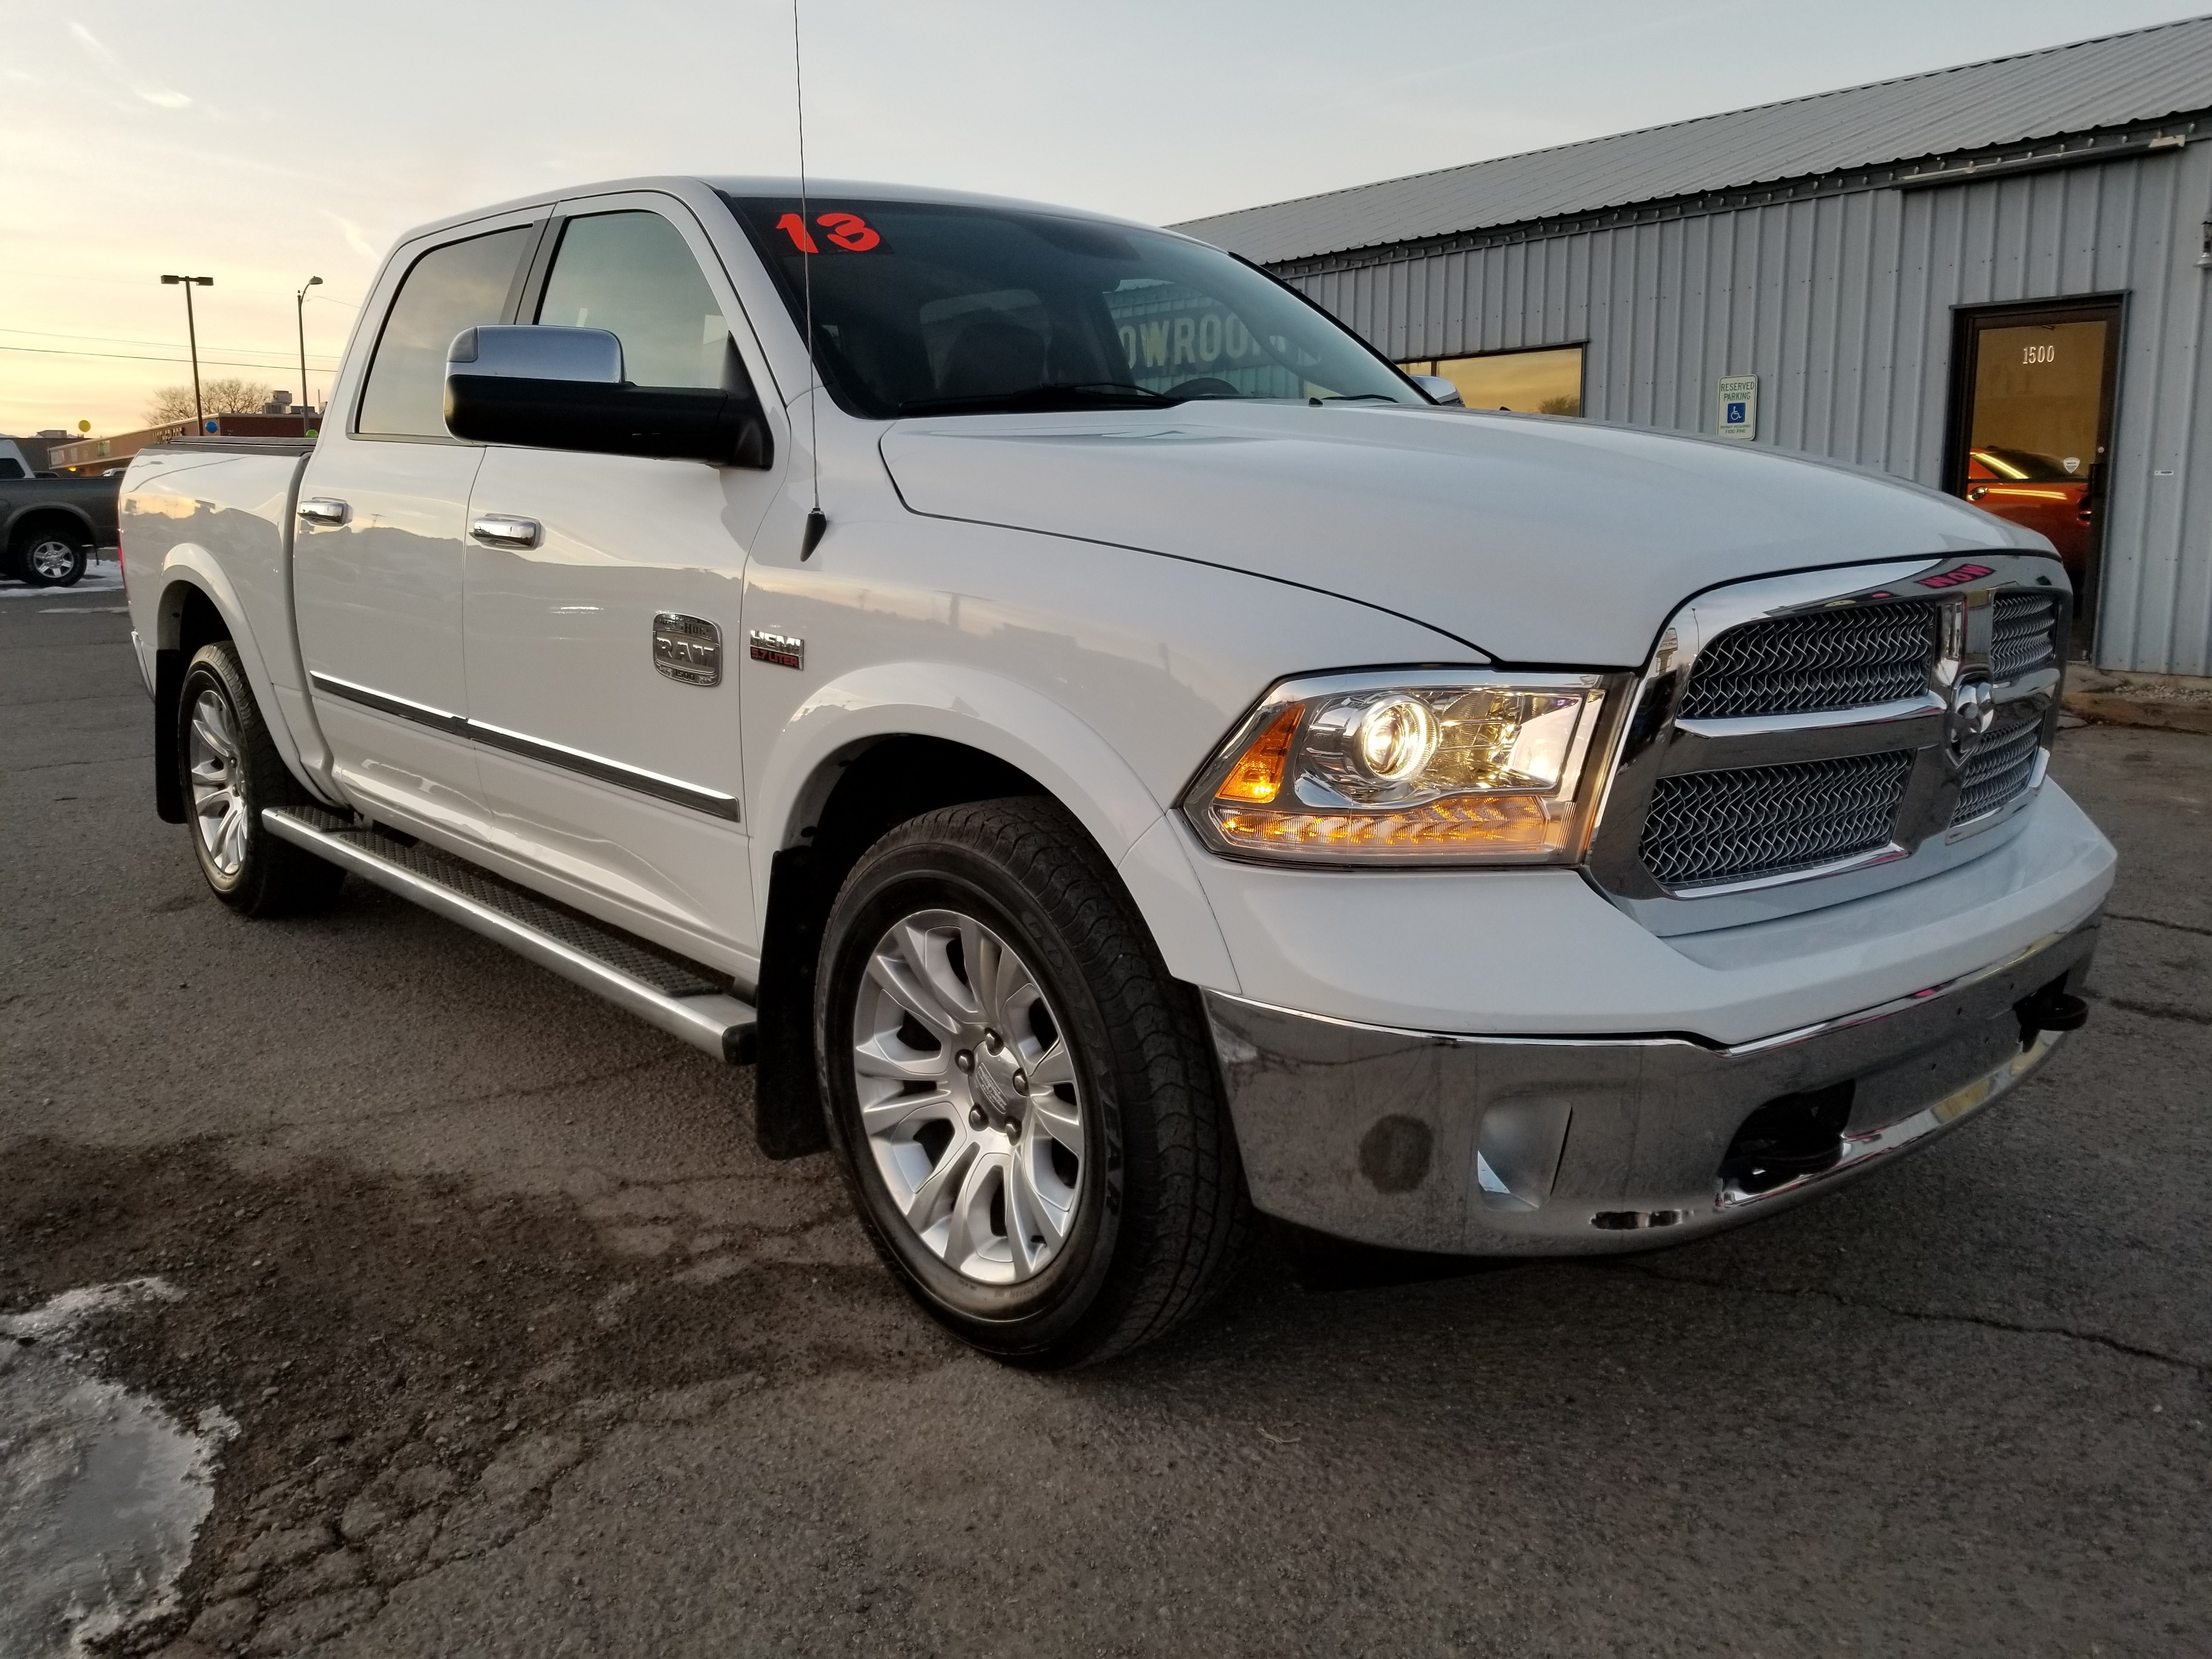 fresh dodgepics lovely ram for car new dodge sport of styles inspirational sale